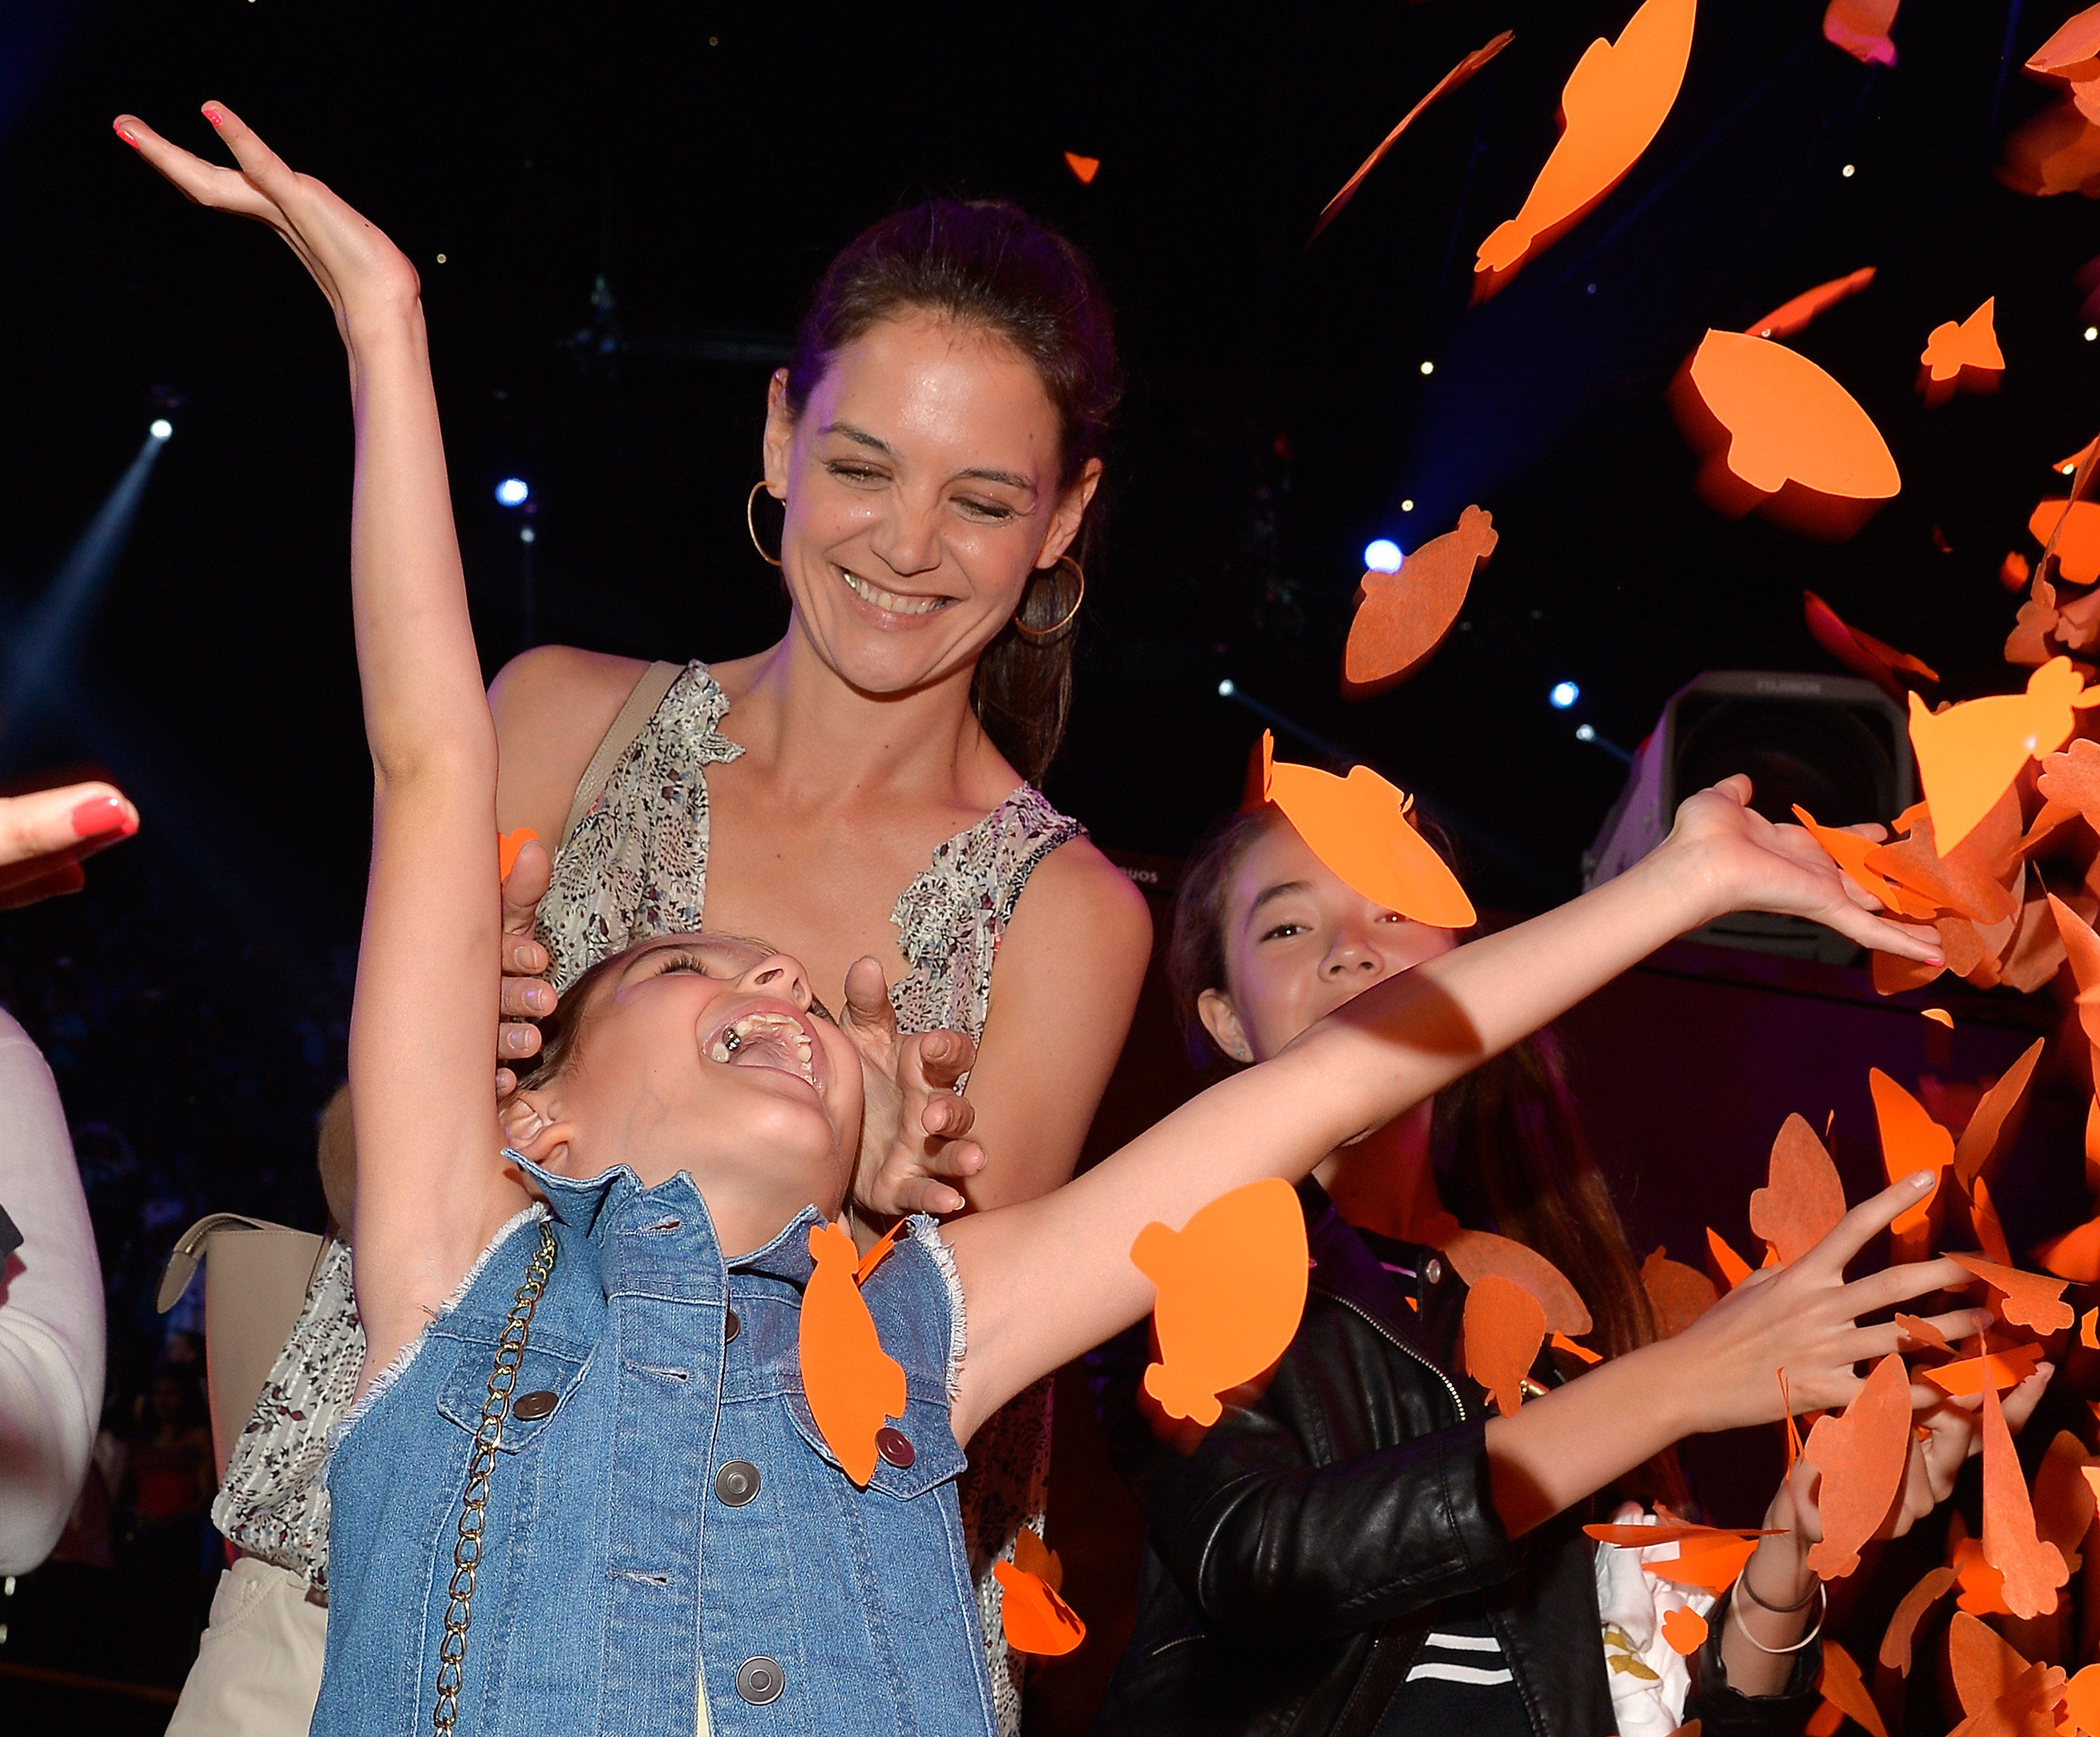 You won't even recognize Suri Cruise in Katie Holmes' newest Instagram pic